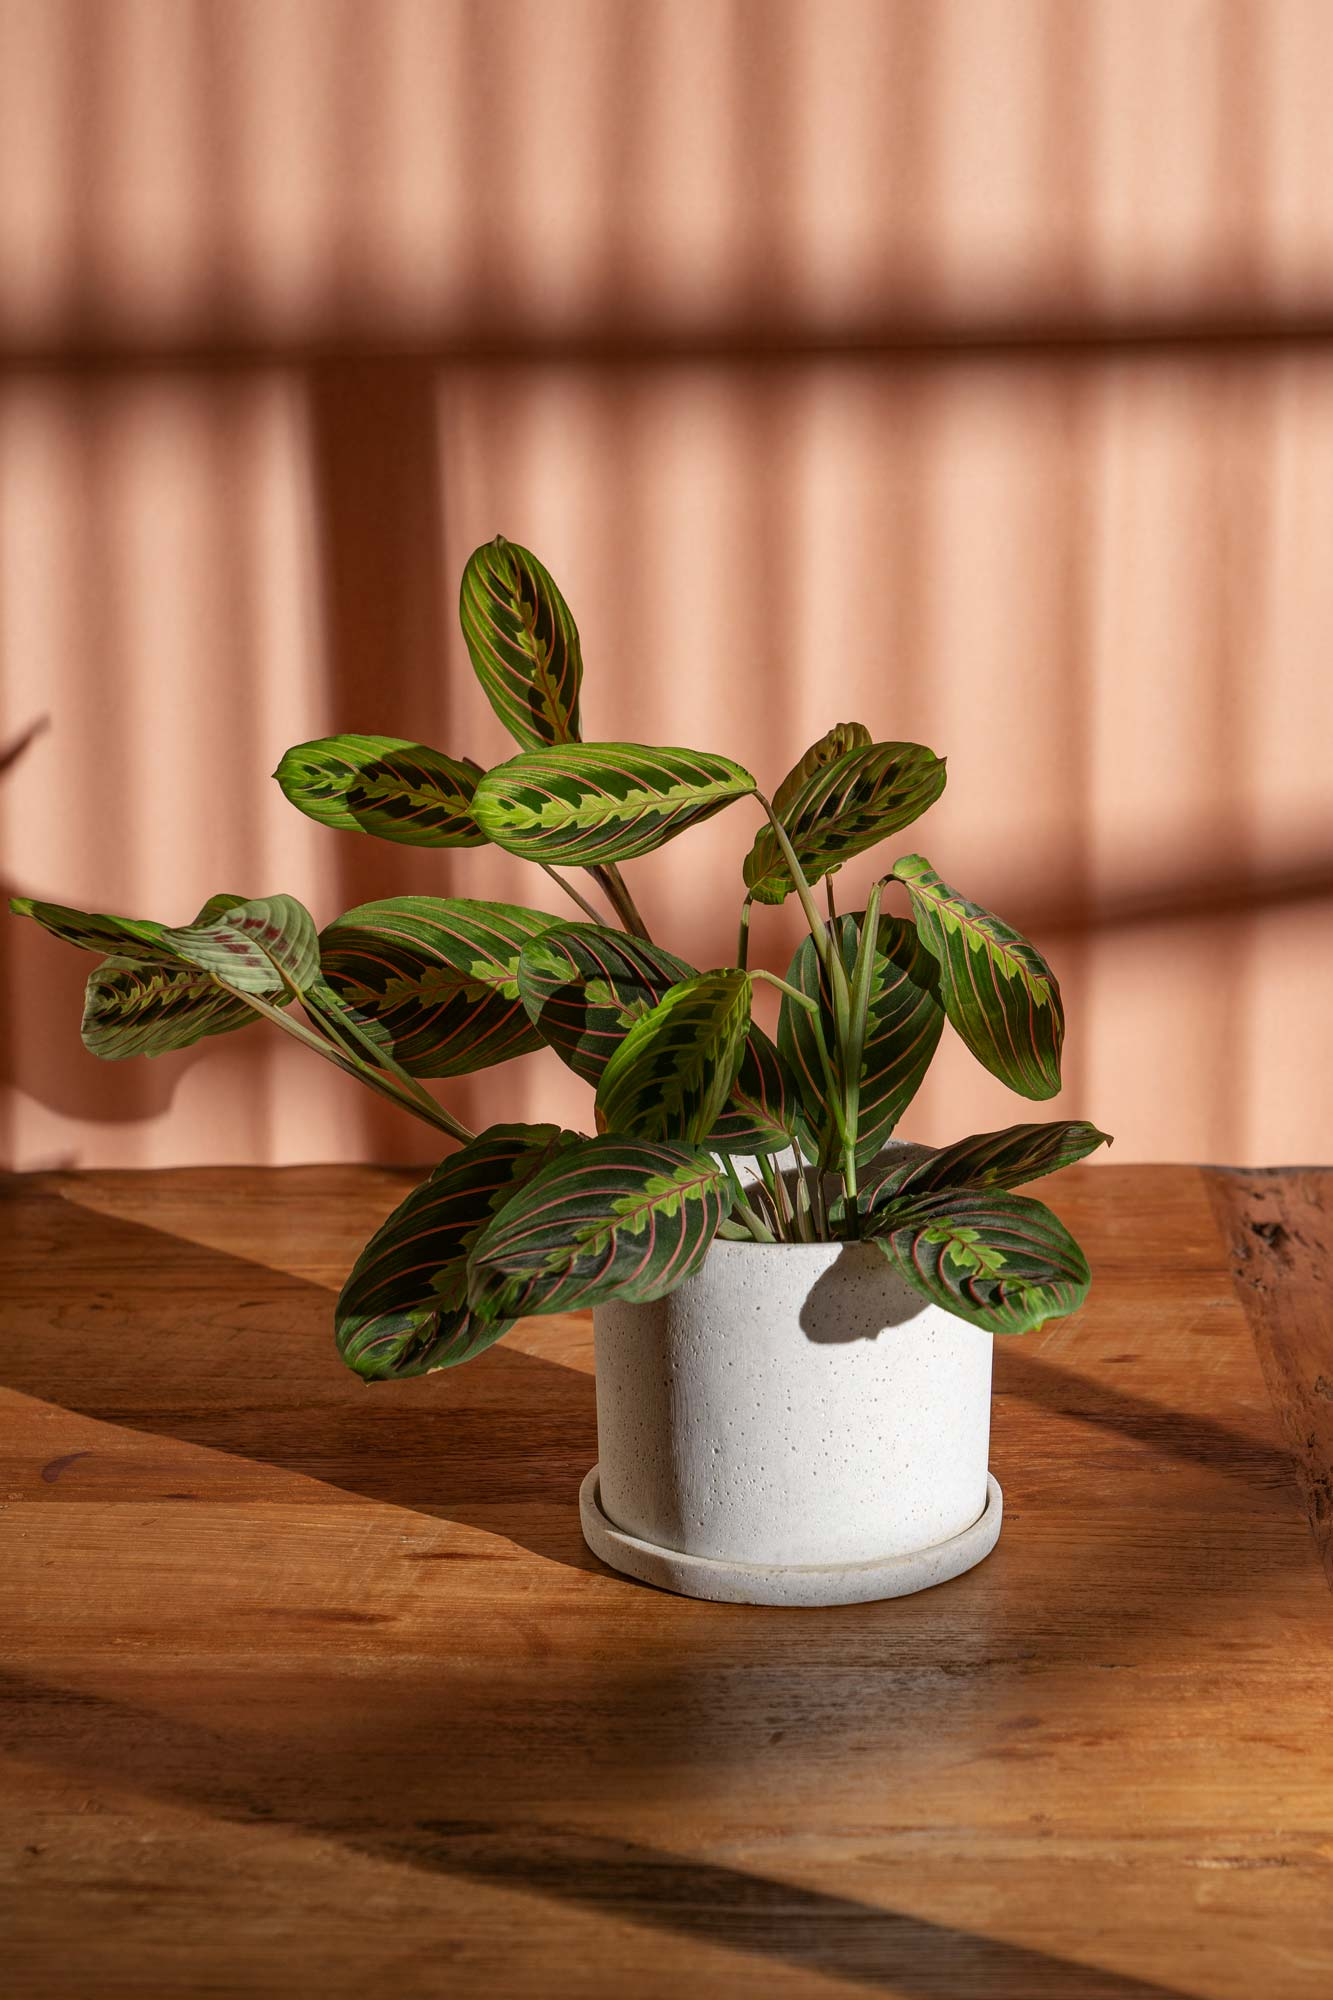 High quality photography of Maranta leuconeura